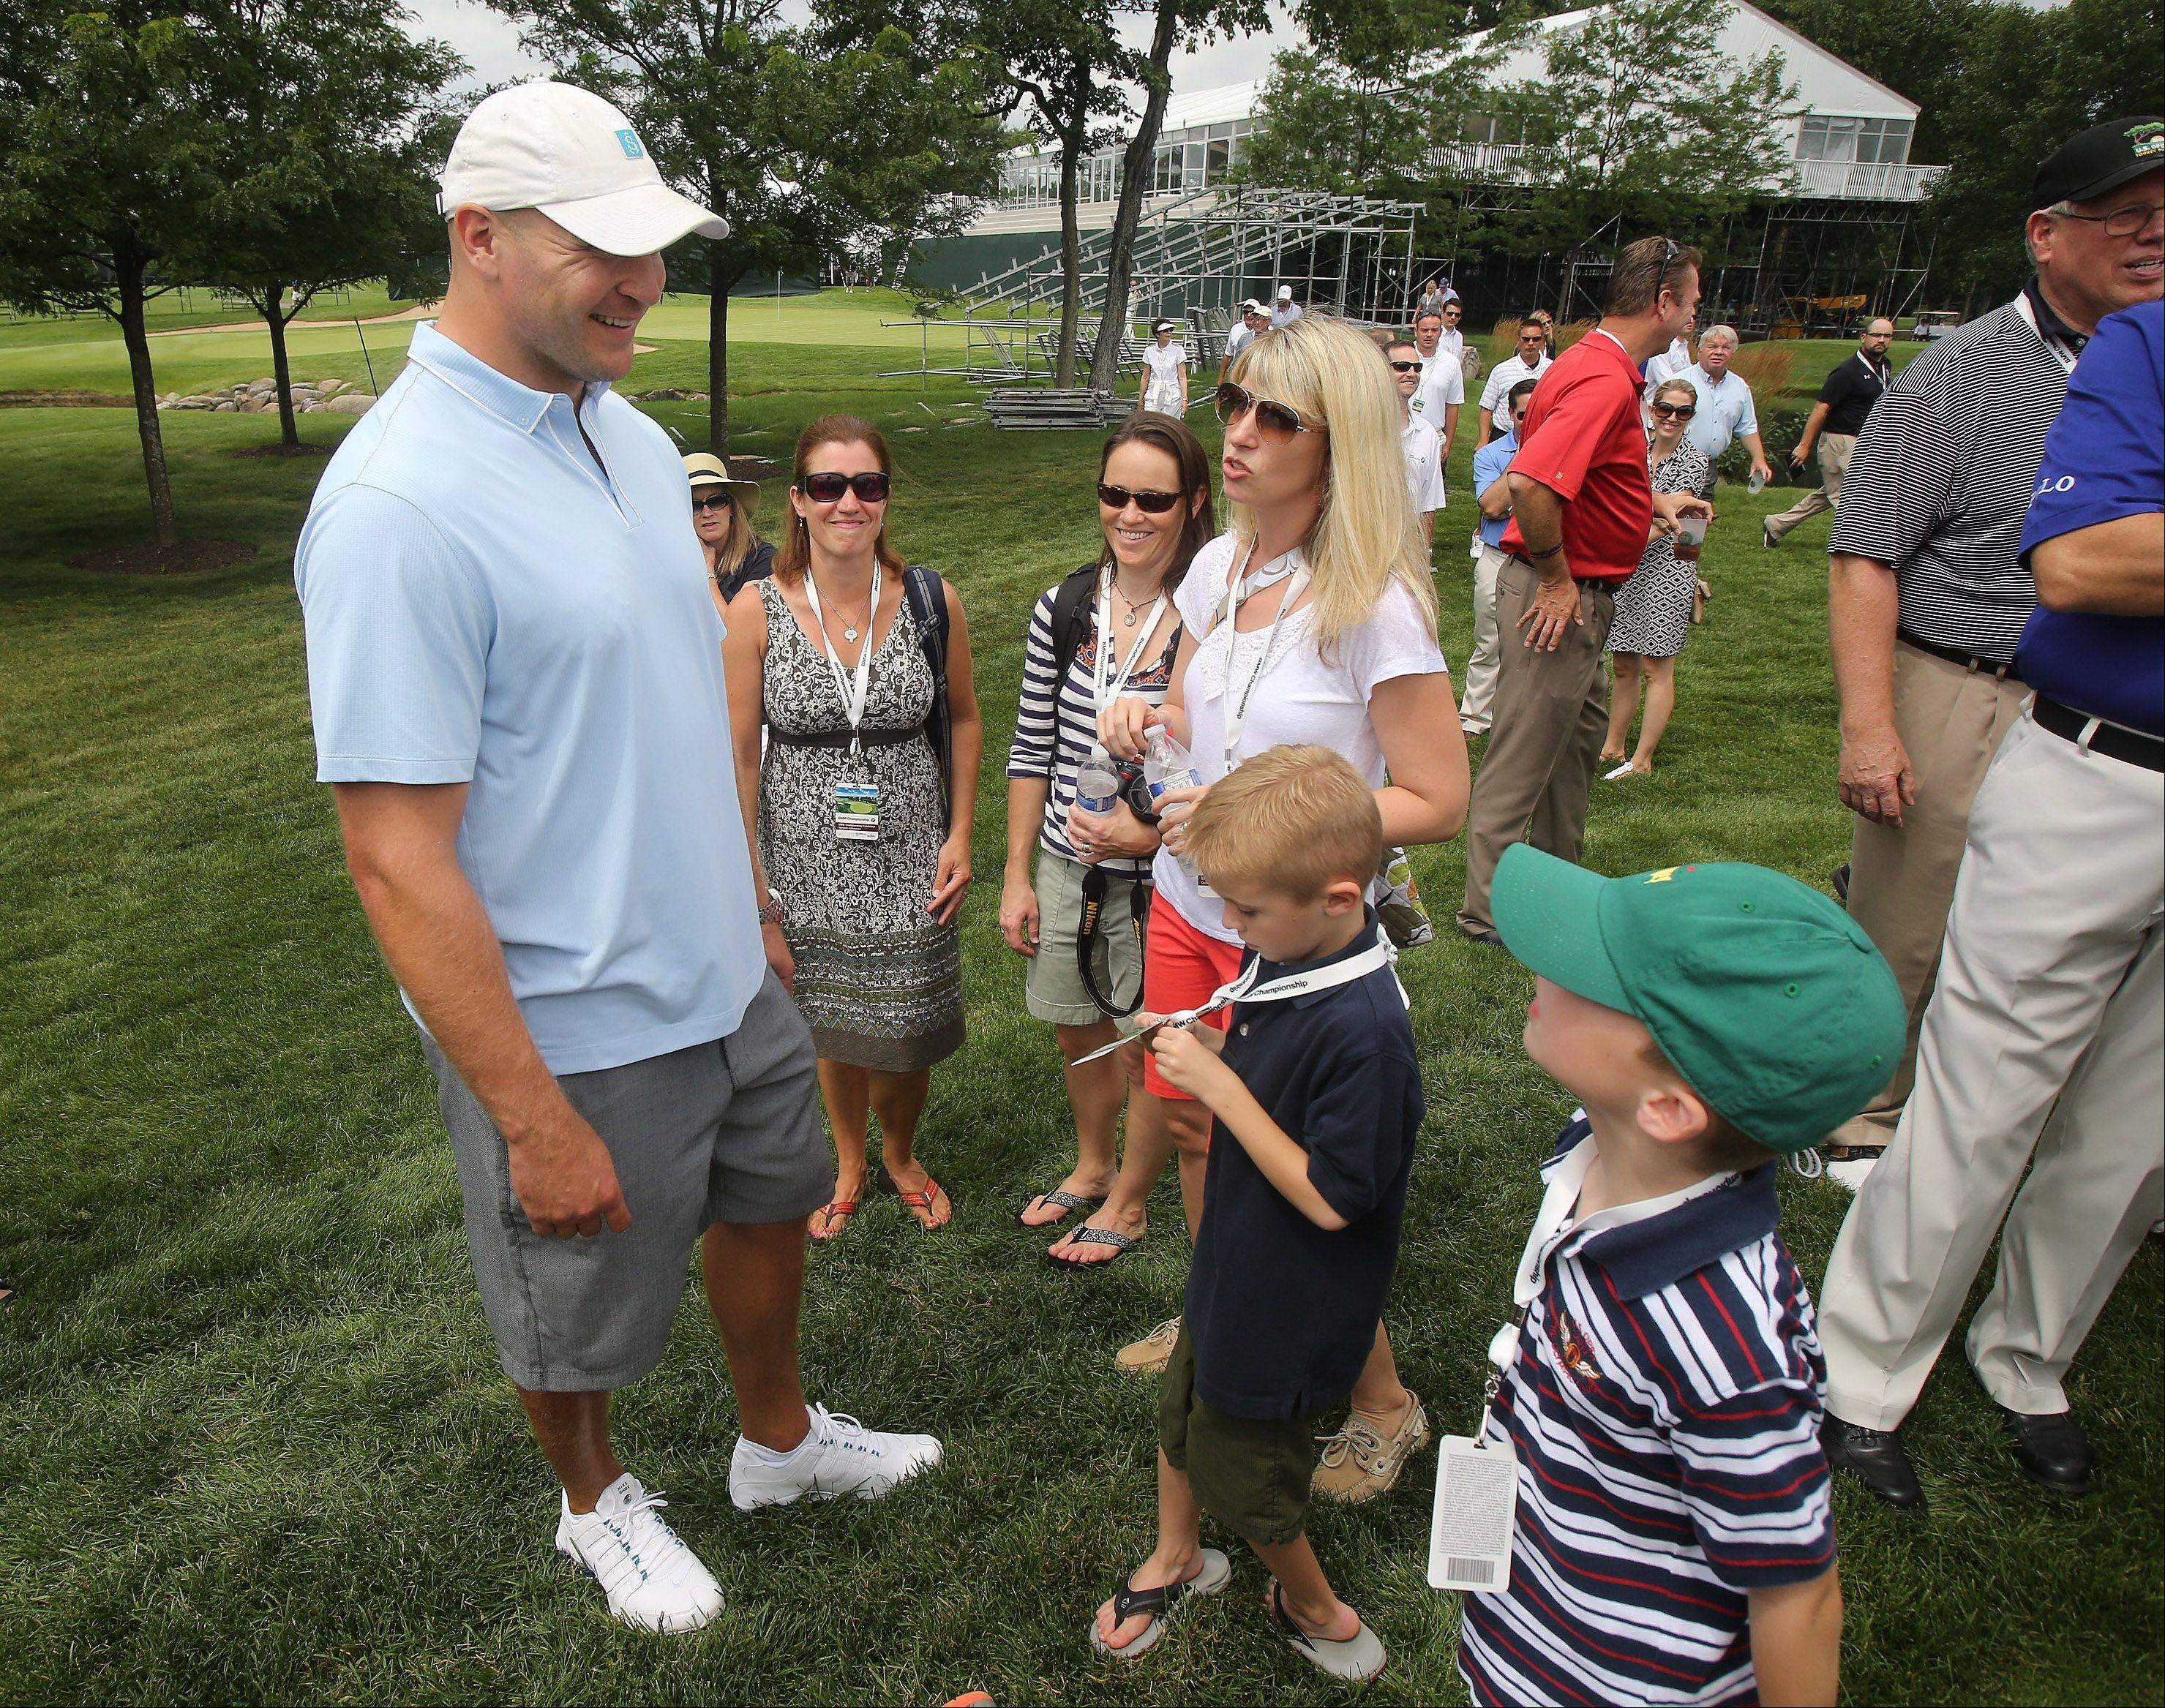 Former Chicago Bears player Brian Urlacher talks to fans as they watch PGA Tour pros Luke Donald and Mark Wilson play an exhibition match with Chicago Bulls guard Kirk Hinrich and Northwestern University basketball coach Chris Collins at Conway Farms Golf Club in Lake Forest. The exhibition was held in advance of the 2013 BMW Championship from Sept. 9-15.